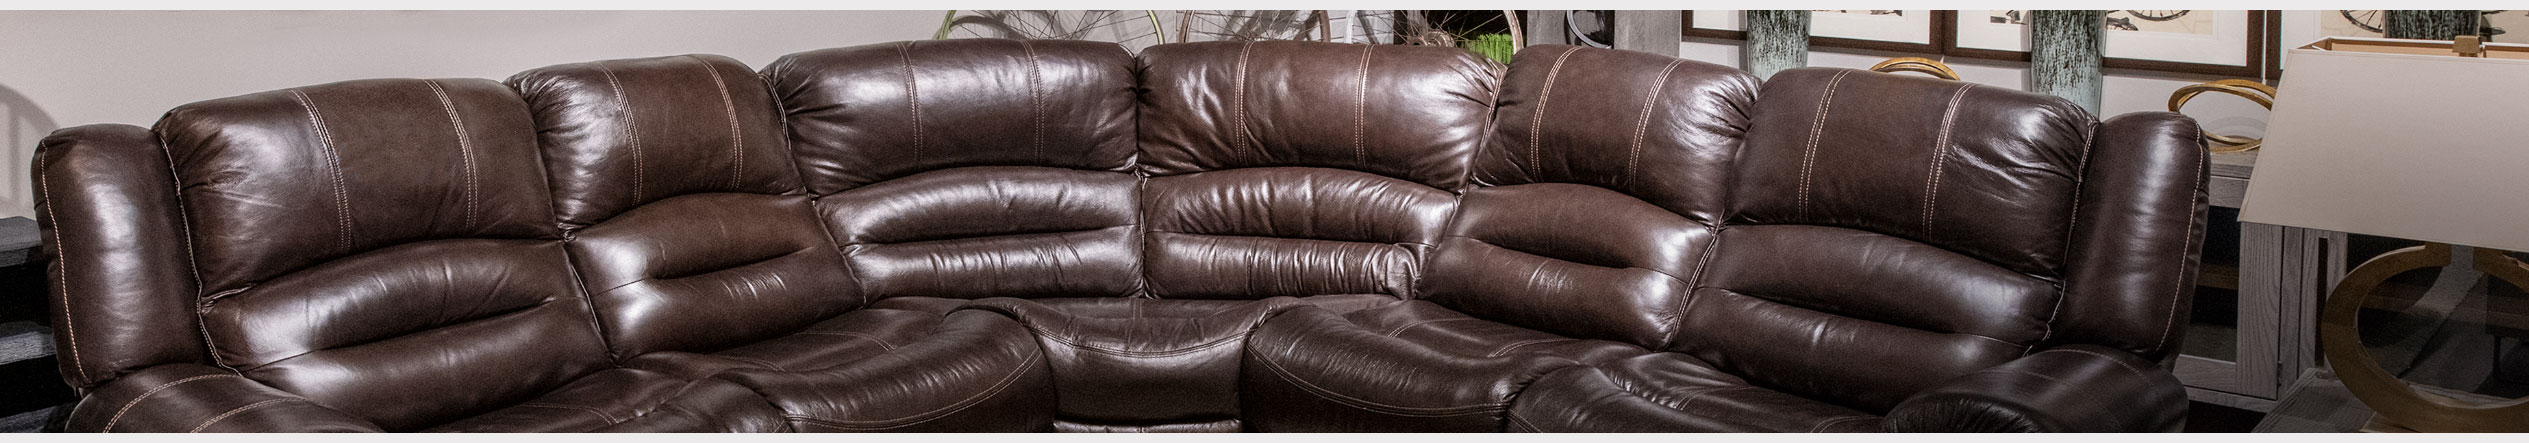 Leather Furniture Care at Jordan's Furniture stores in CT, MA, NH, and RI